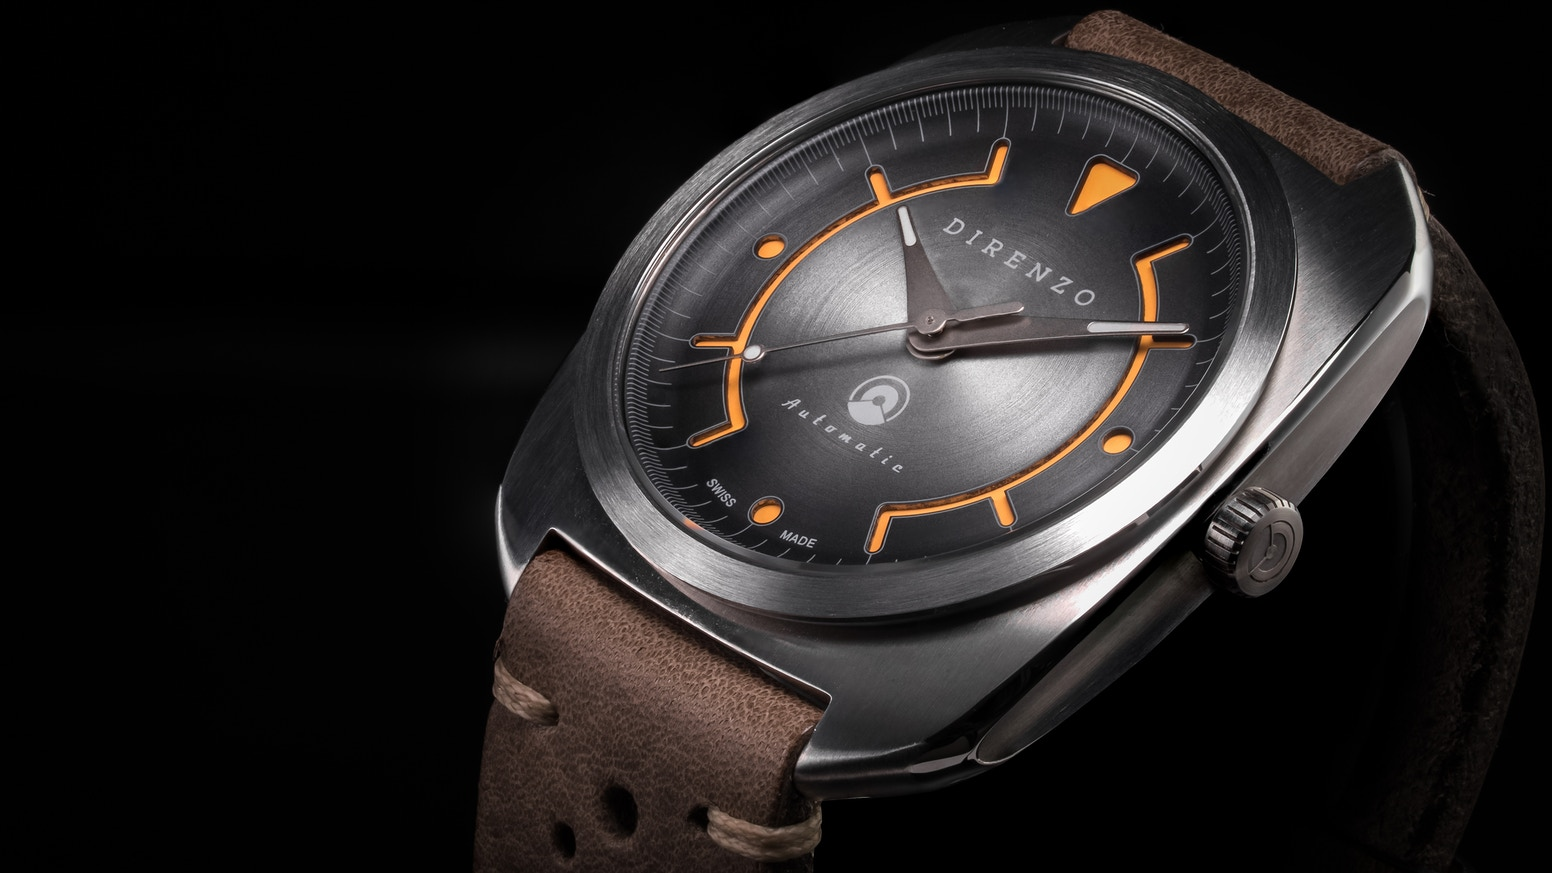 The most beautiful retro-futuristic  Swiss Made Automatic Watch ever made.